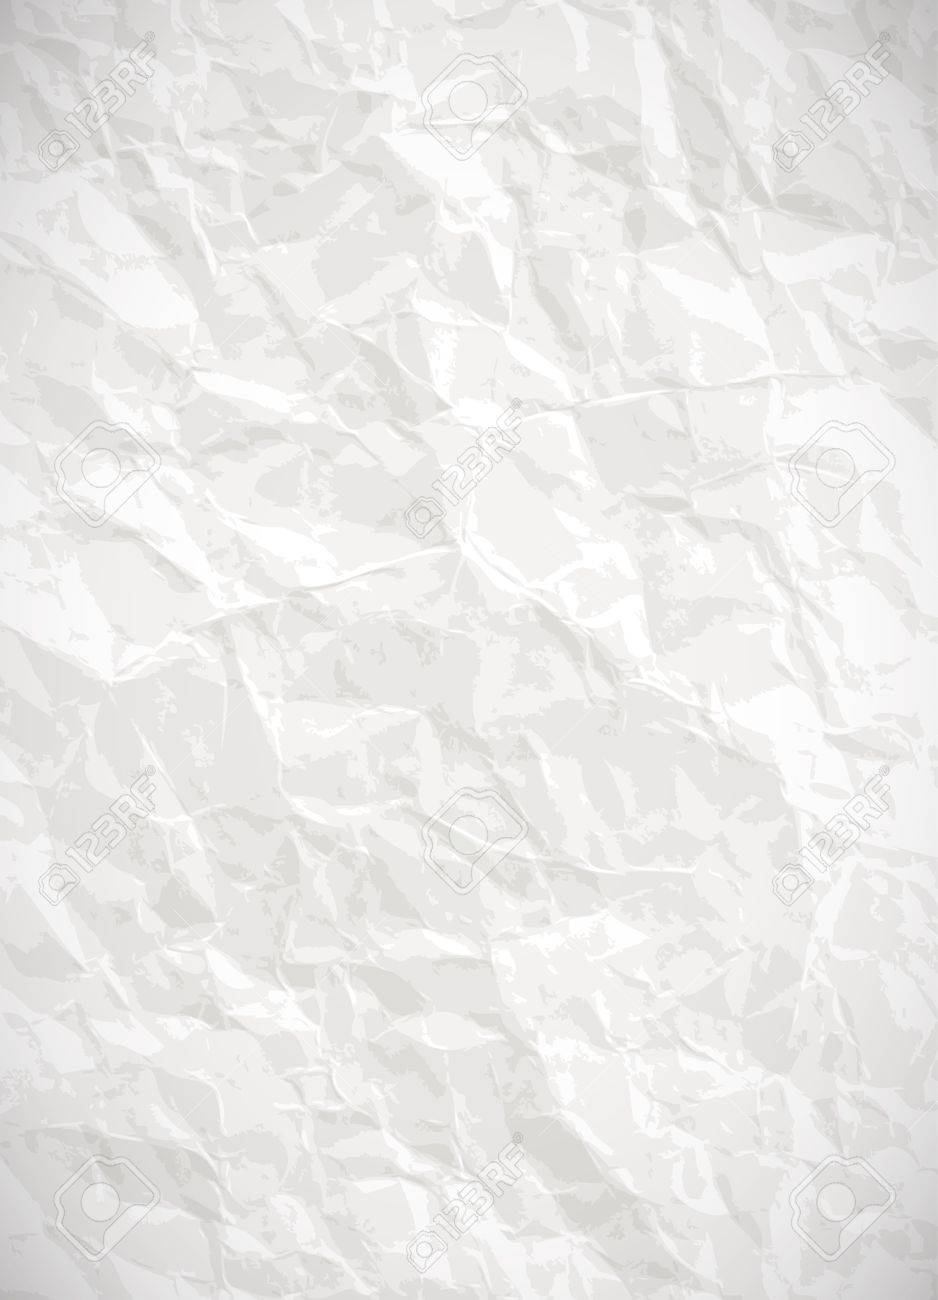 Paper Background - Vector White Crumpled Texture Royalty Free ...